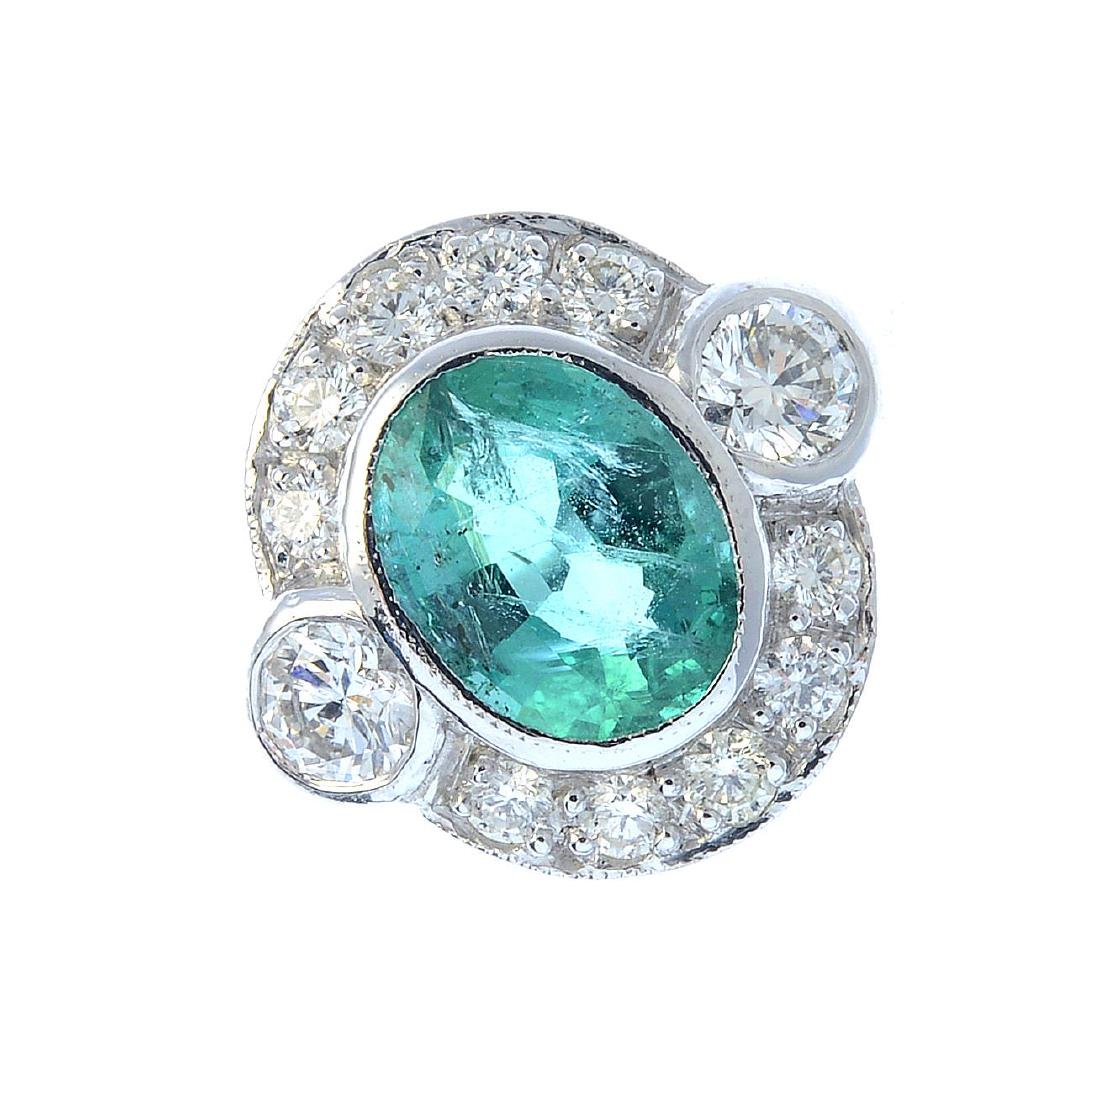 An emerald and diamond dress ring. The oval-shape